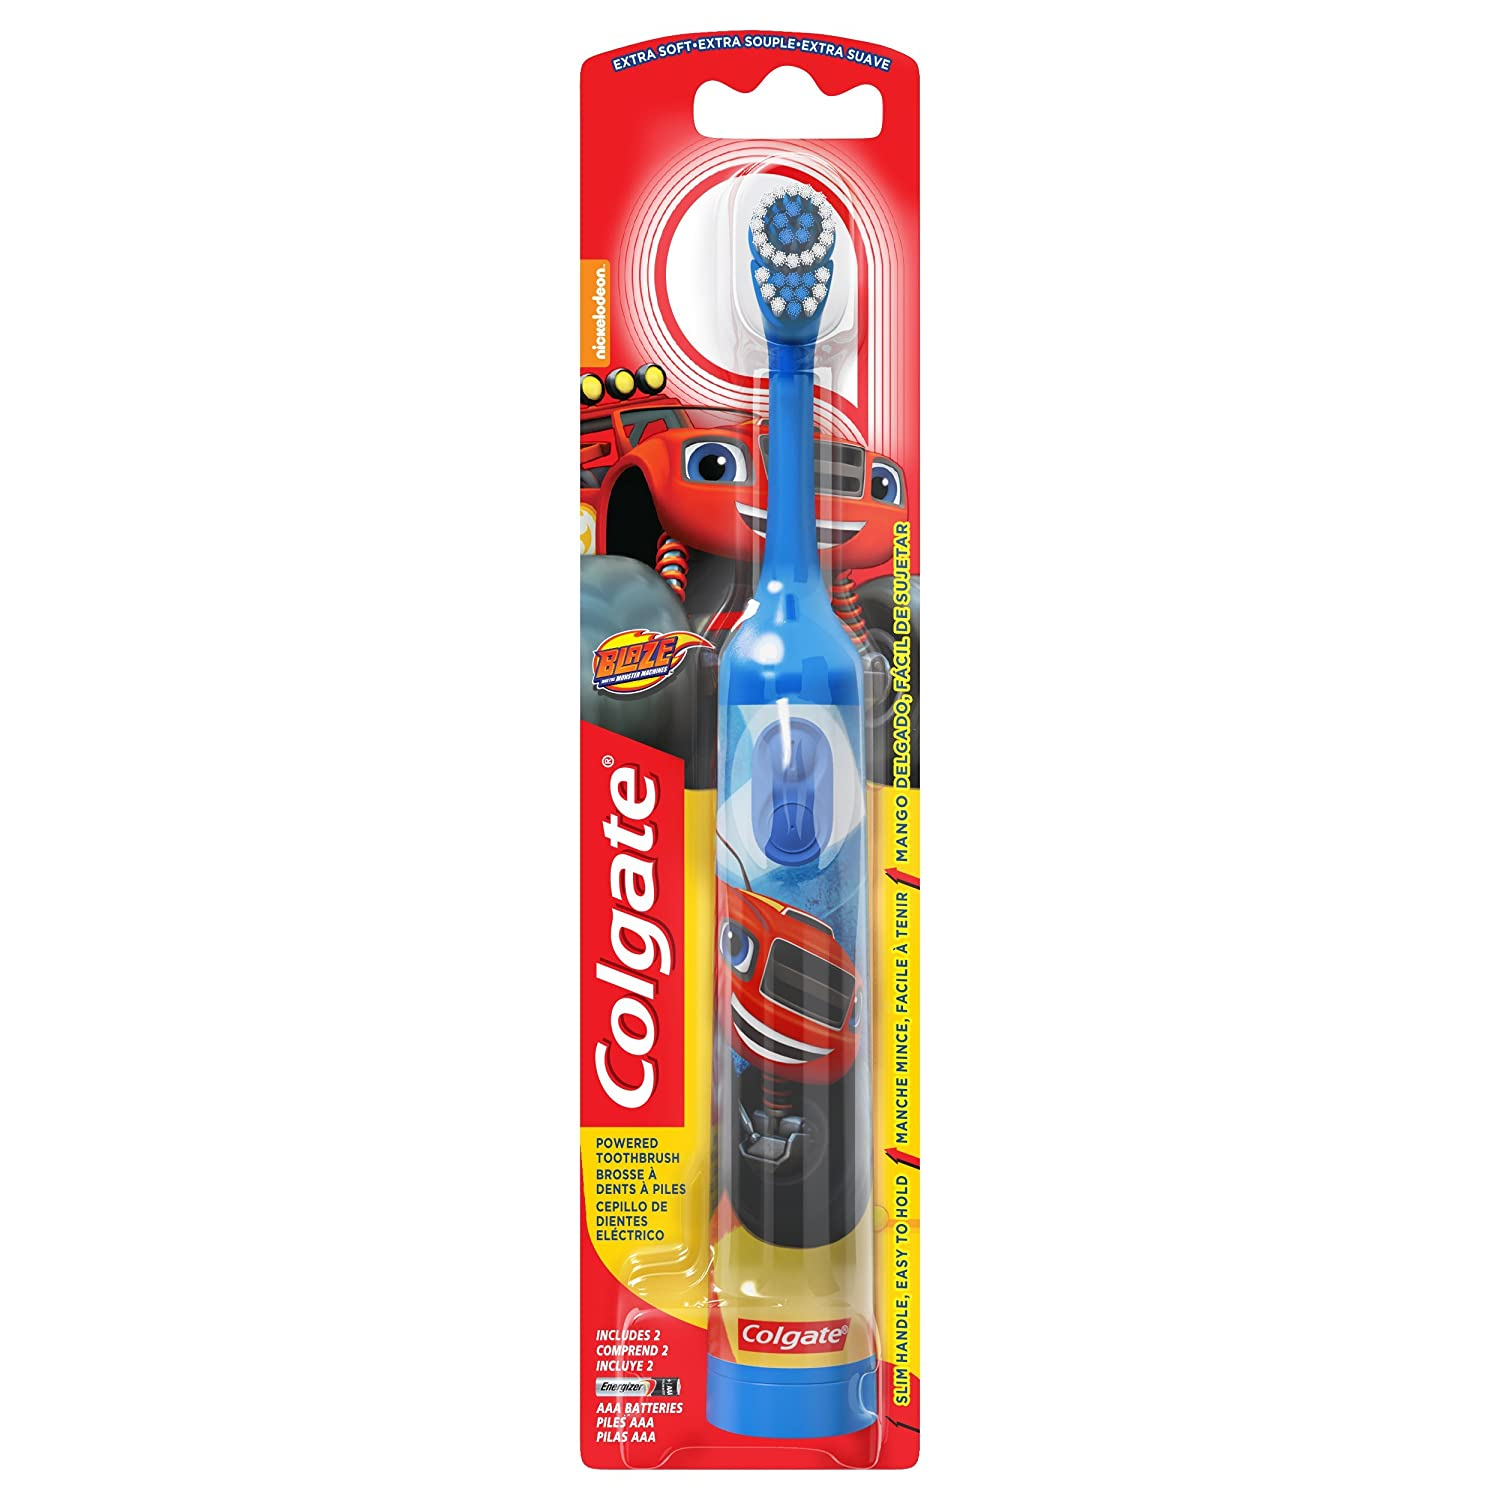 Colgate Kids Battery Powered Toothbrush, Minions, 1 Count (Colours Vary) Colgate-Palmolive CA 168840